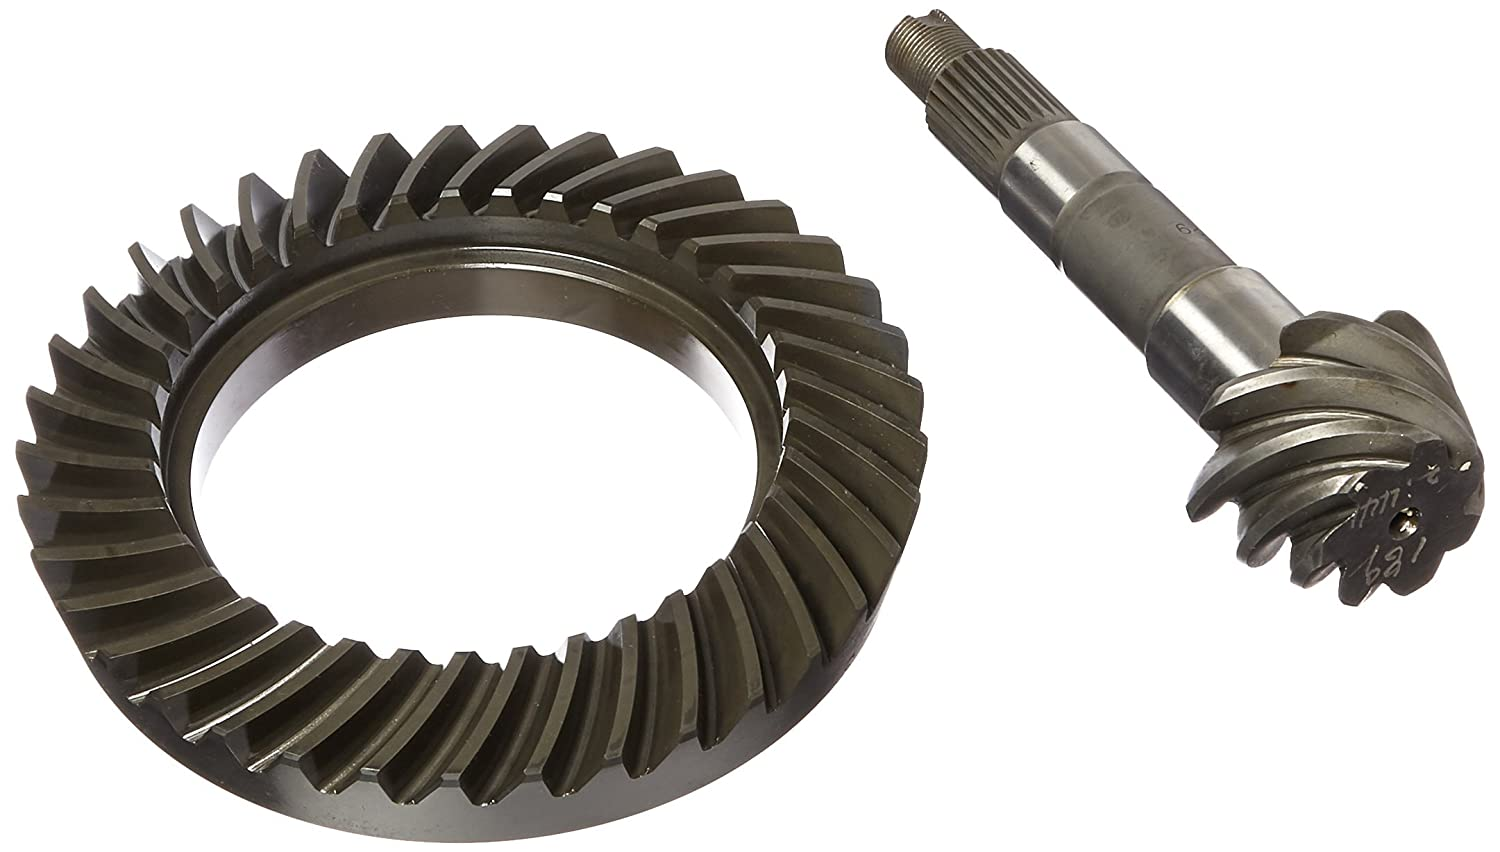 TOYOTA 7.8 Style, 4.88 Ratio Motive Gear T488 Ring and Pinion